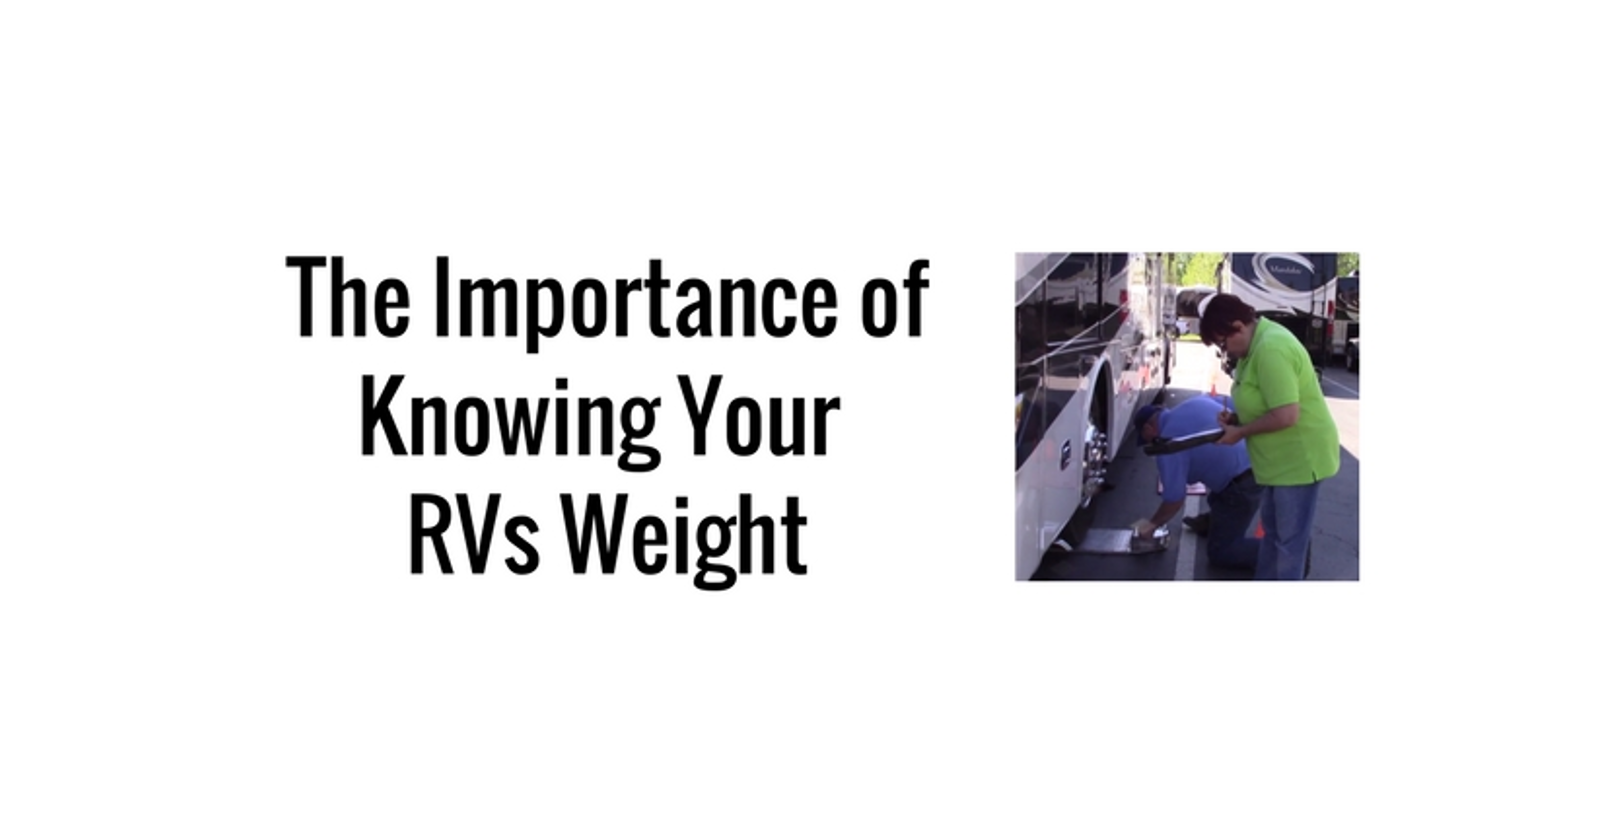 The Importance of Knowing Your RV's Weight - featuring Smart Weigh